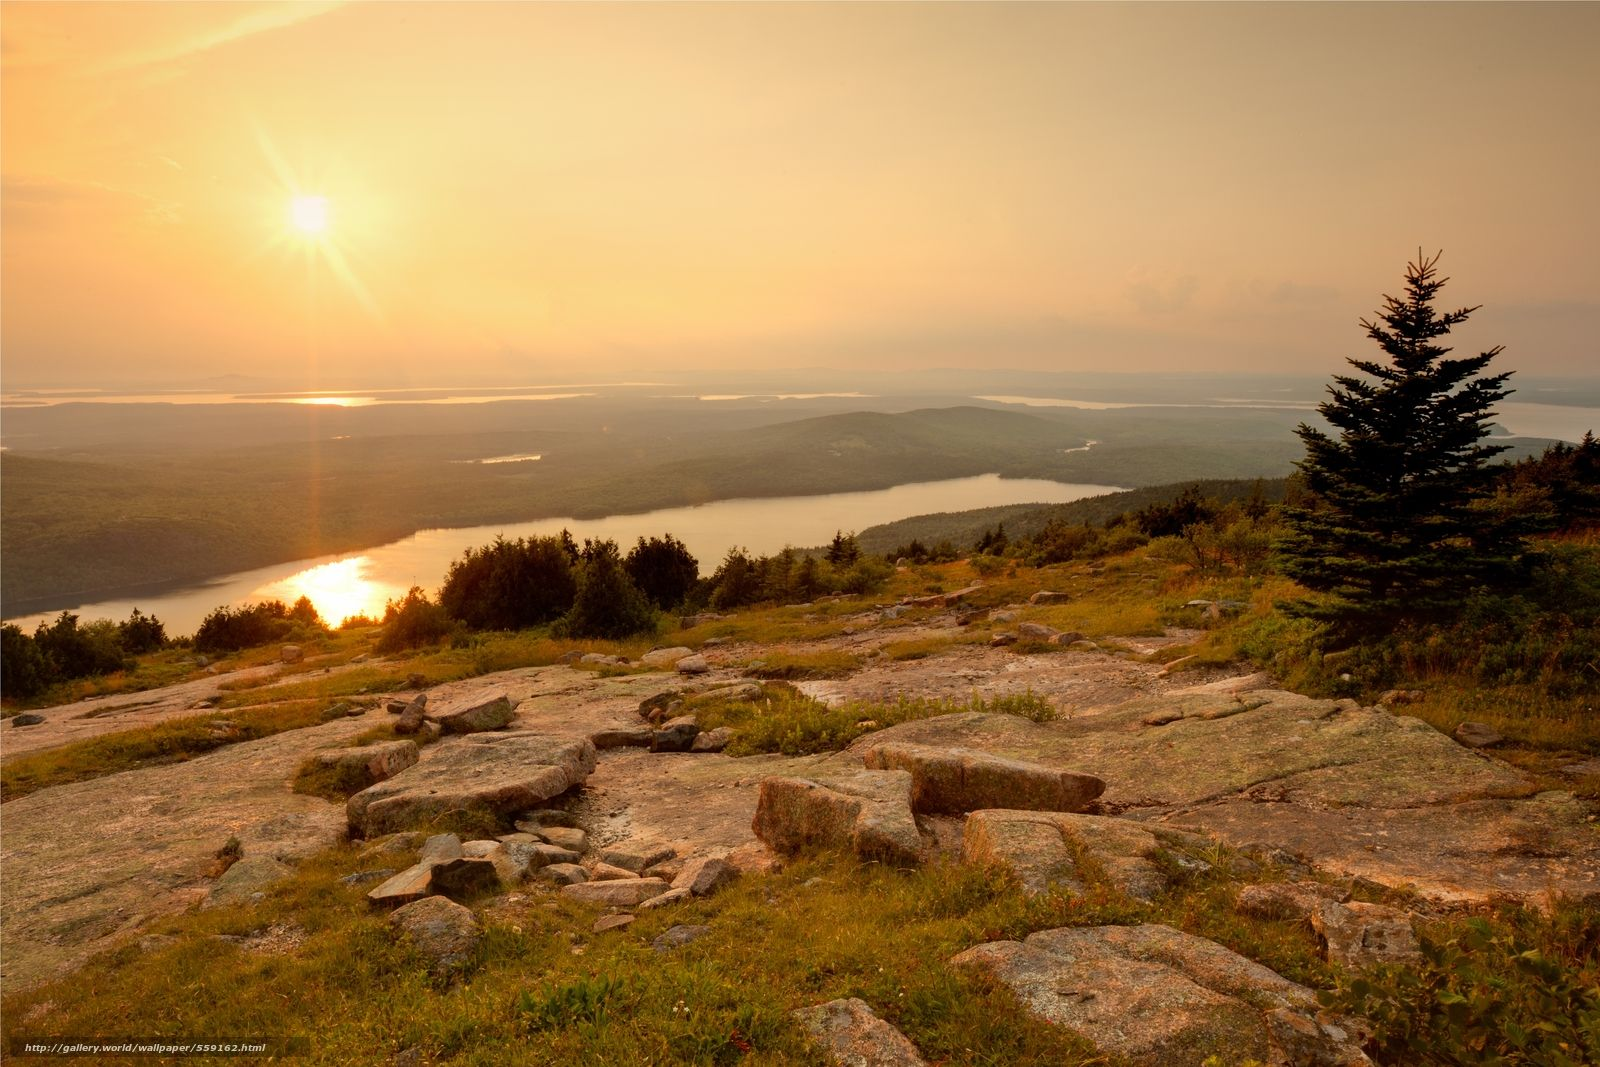 Download wallpapers Acadia National Park, Maine, USA wallpaper